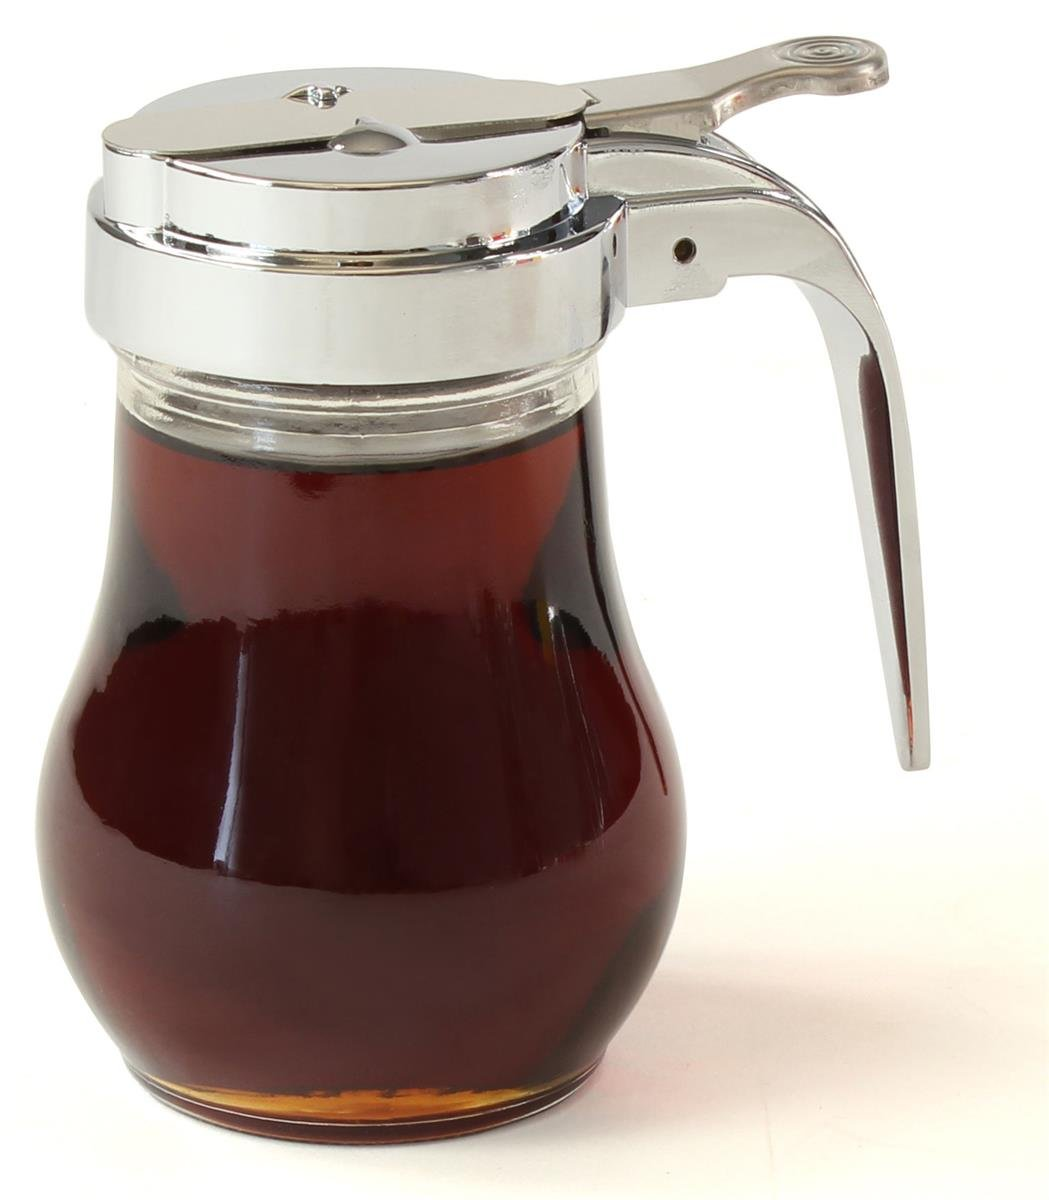 Set of 12, Classic Diner Style 6-Ounce Syrup Dispenser, 2-3/4 x 4 x 4-Inch, Sliding Spout, Steel Top, Glass Jug, Hook Design